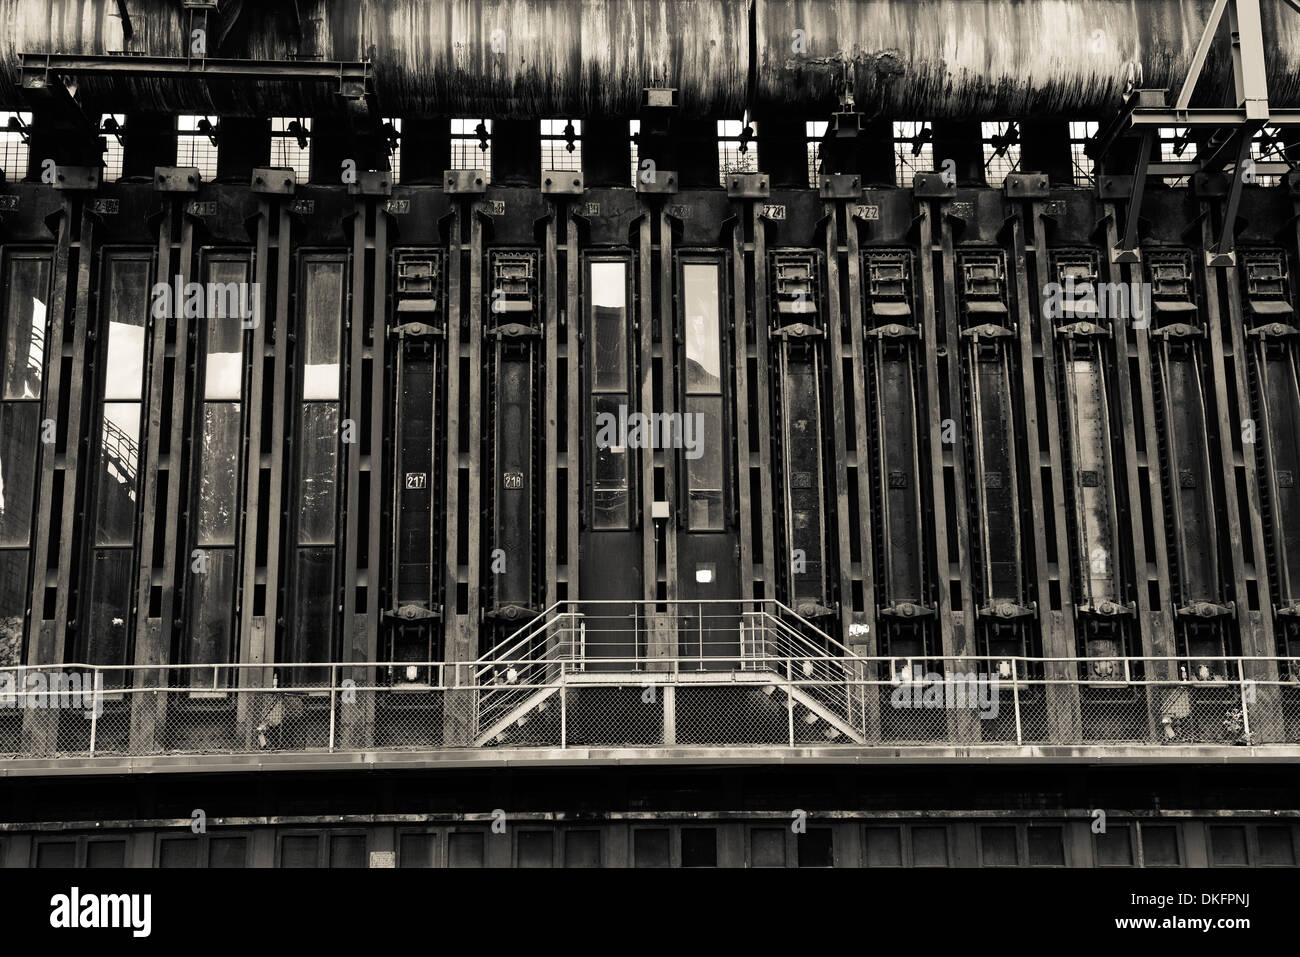 Coking plant, Zeche Zollverein, Essen, North Rhine-Westphalia, Germany, Europe - Stock Image